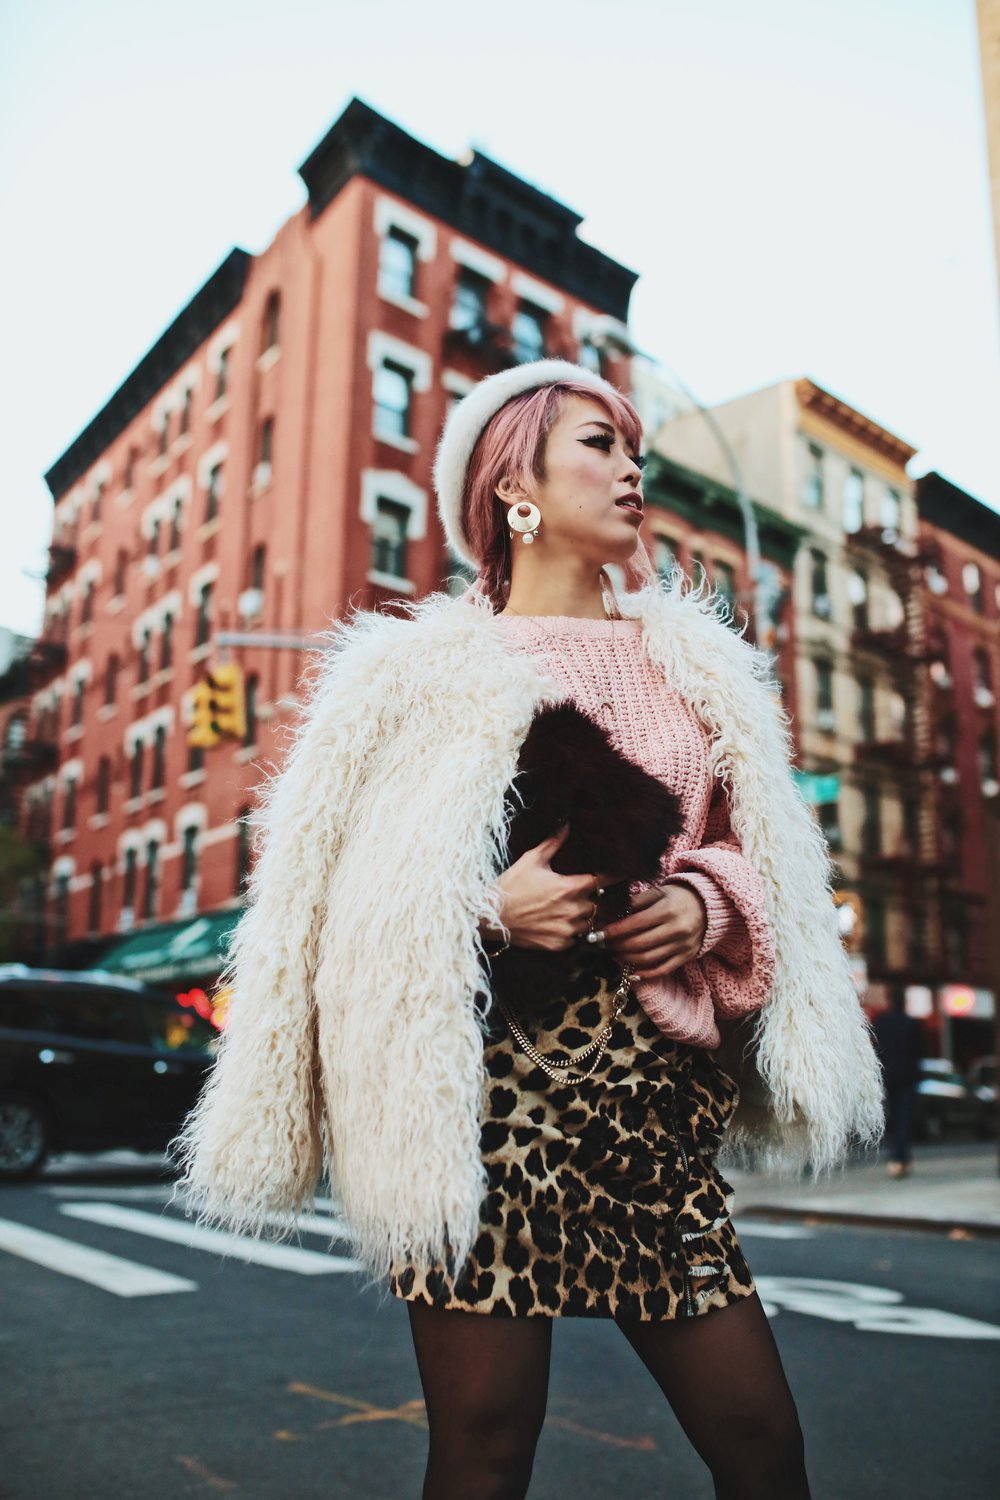 H&M Pink Sweater-Zara leopar prins mini skirt-H&M white shaggy coat-DVF fur bag-anthropologie white beret-Urban Outfitters Sunglasses-ALDO Ankle Boots-Mango Earrings-Aikas Love Closet-New York City-Pink Hair-Style Fashion Blogger-Seattle-Japanese_Petite fashion blogger 9